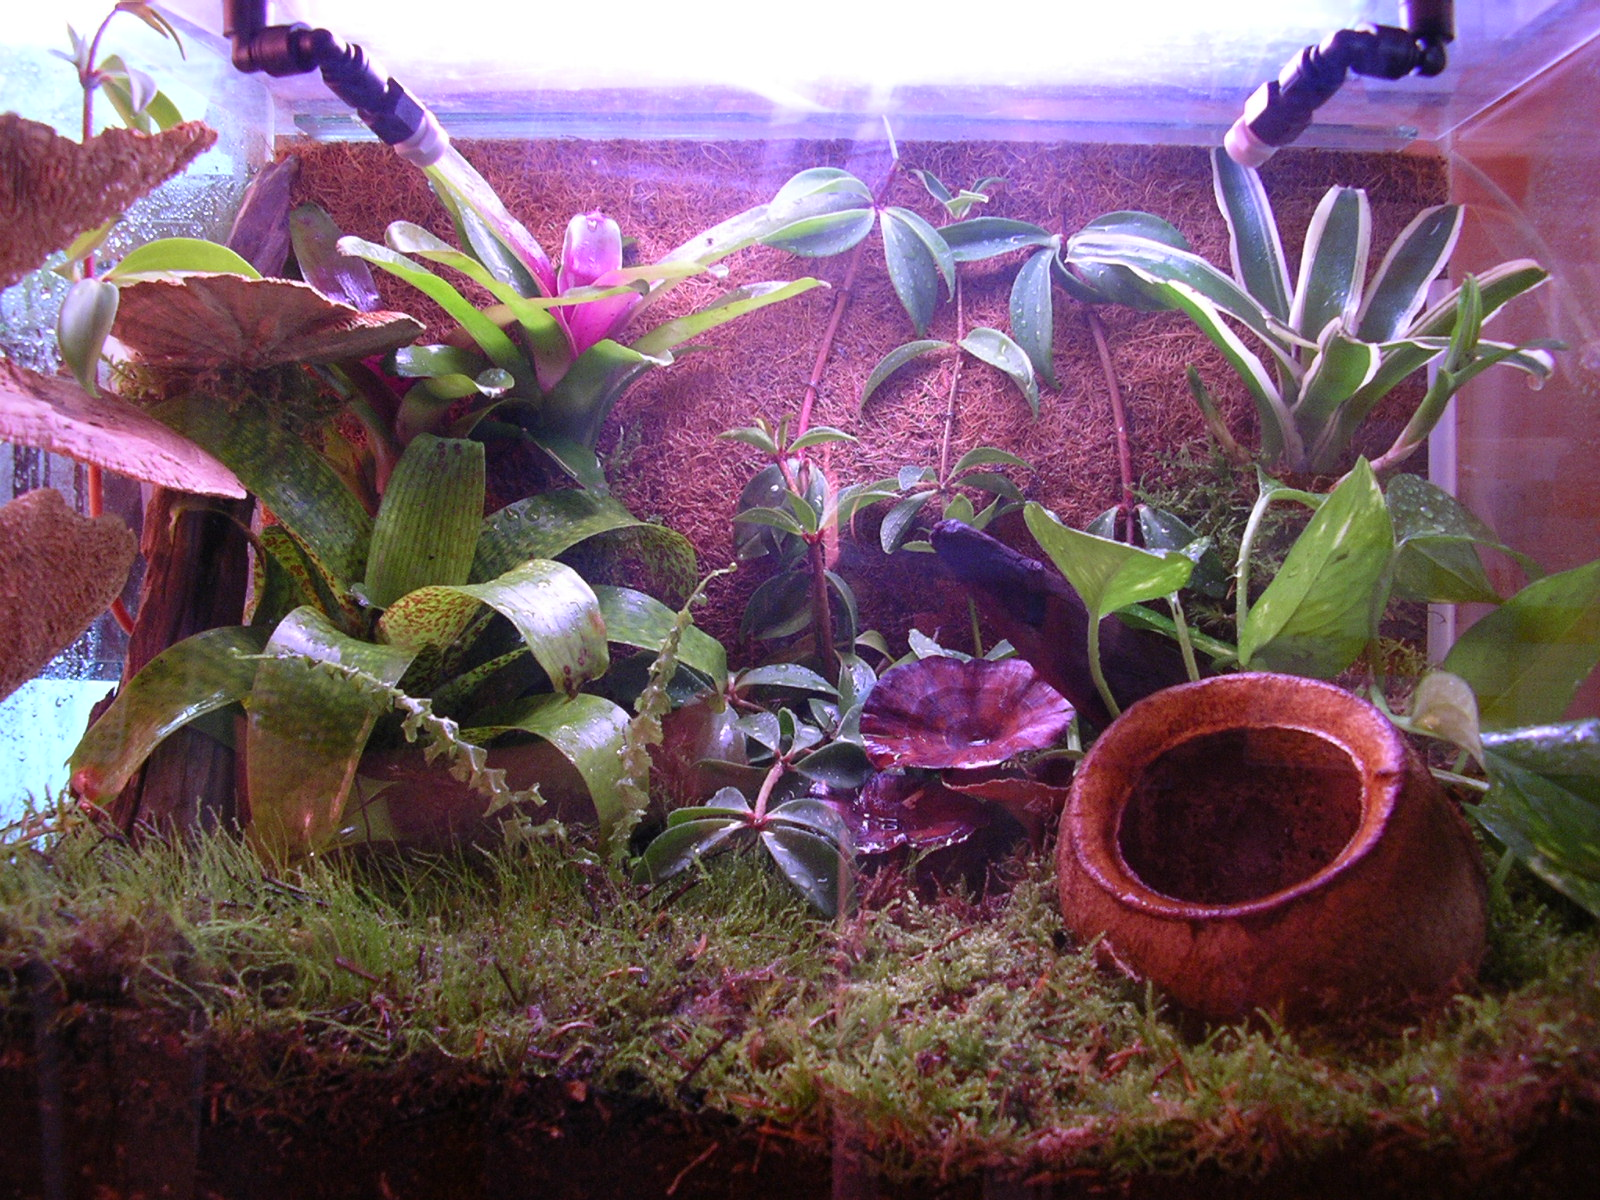 Pollywog Natural Decor & Habitat Enrichment